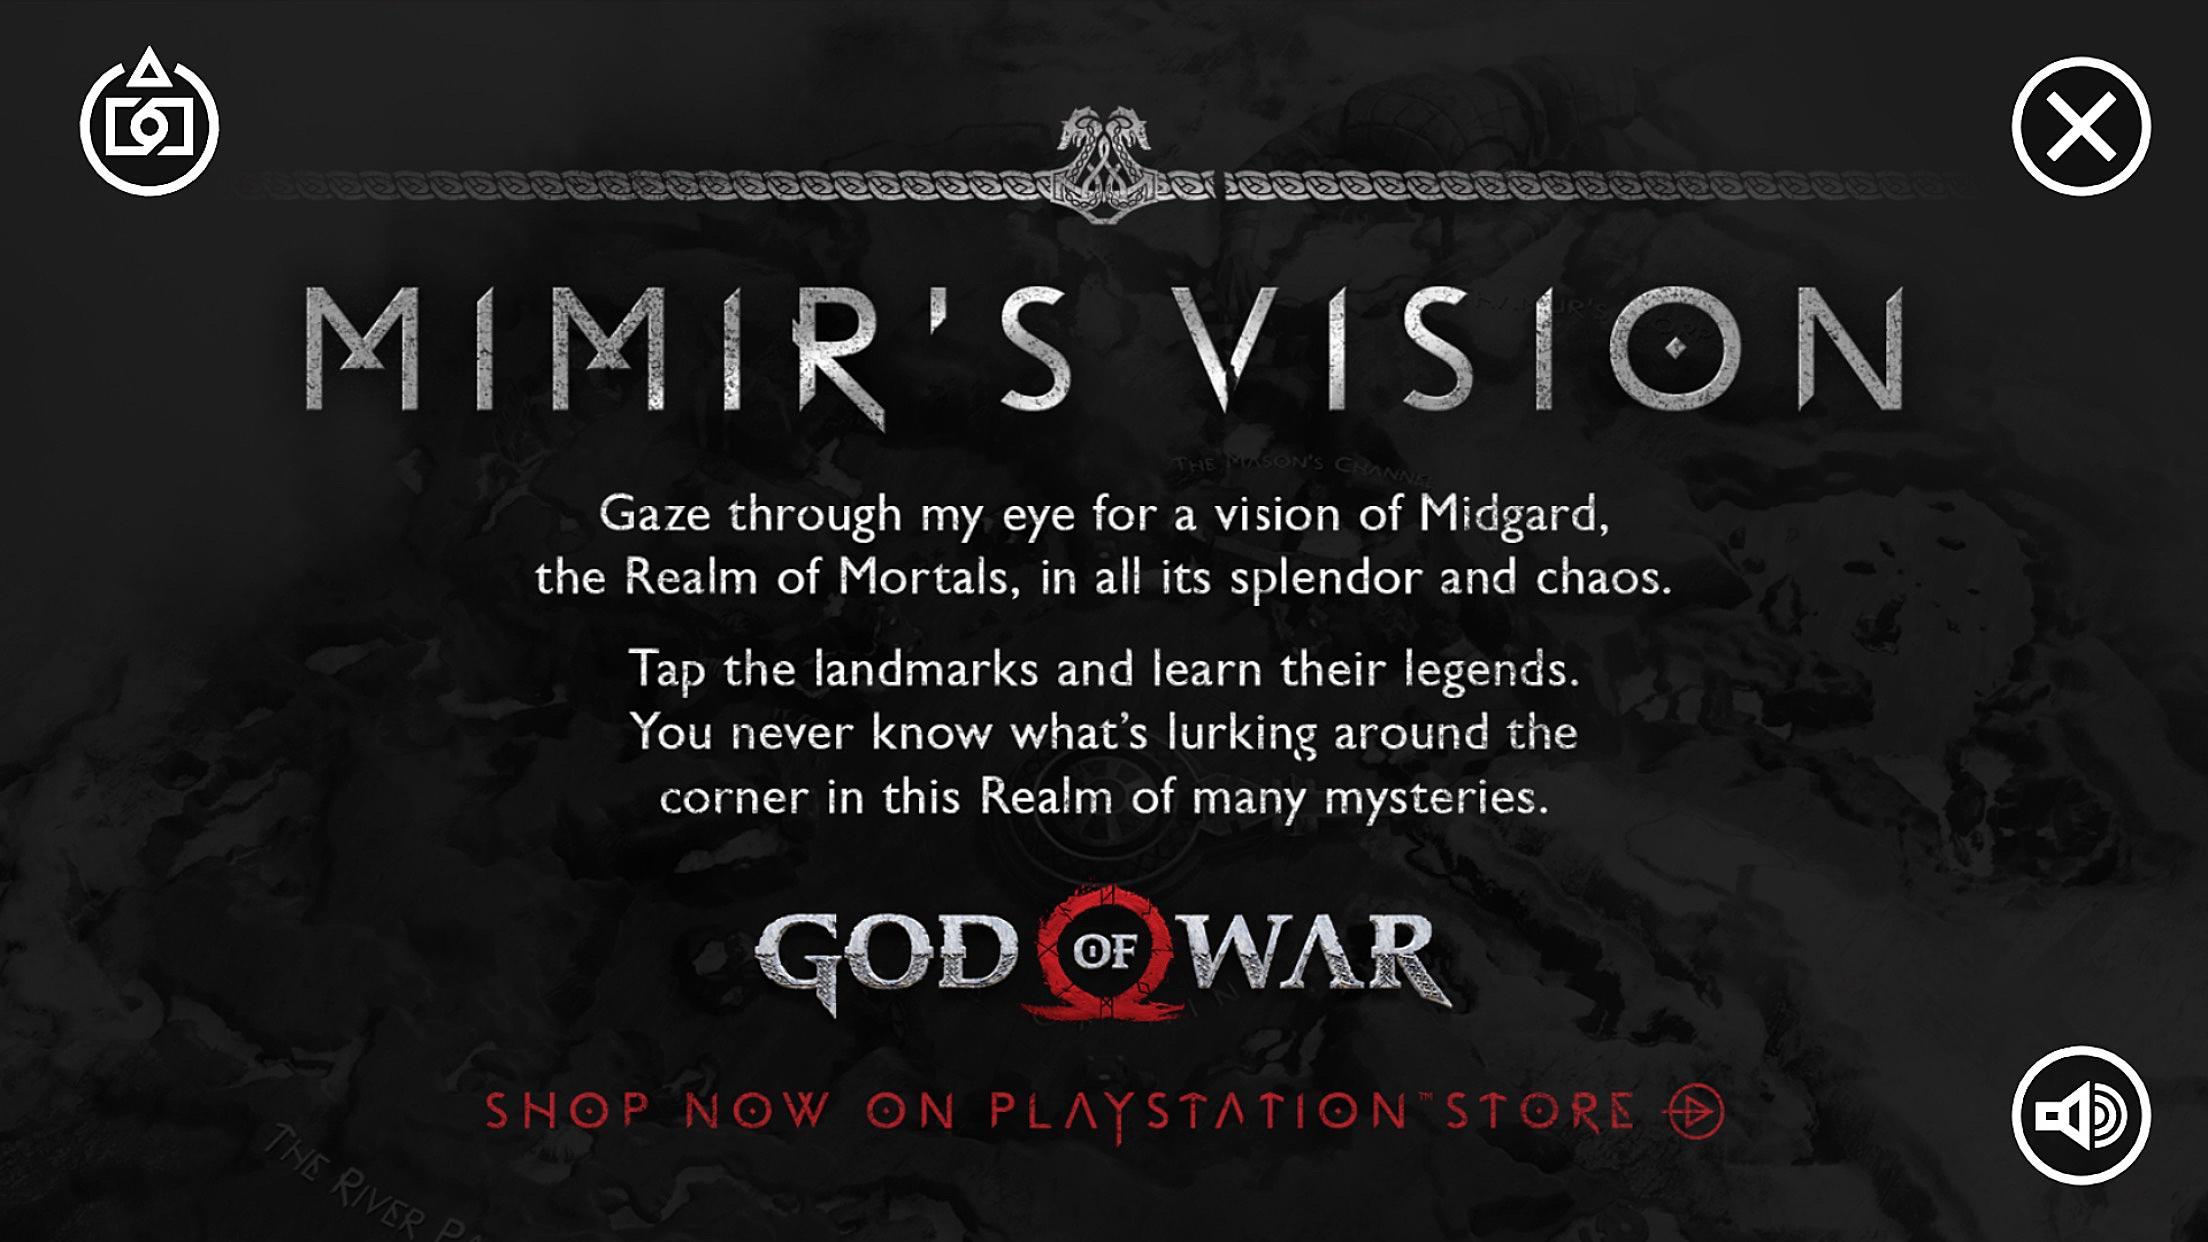 God of War | Mimir's Vision 1.3 Screenshot 2